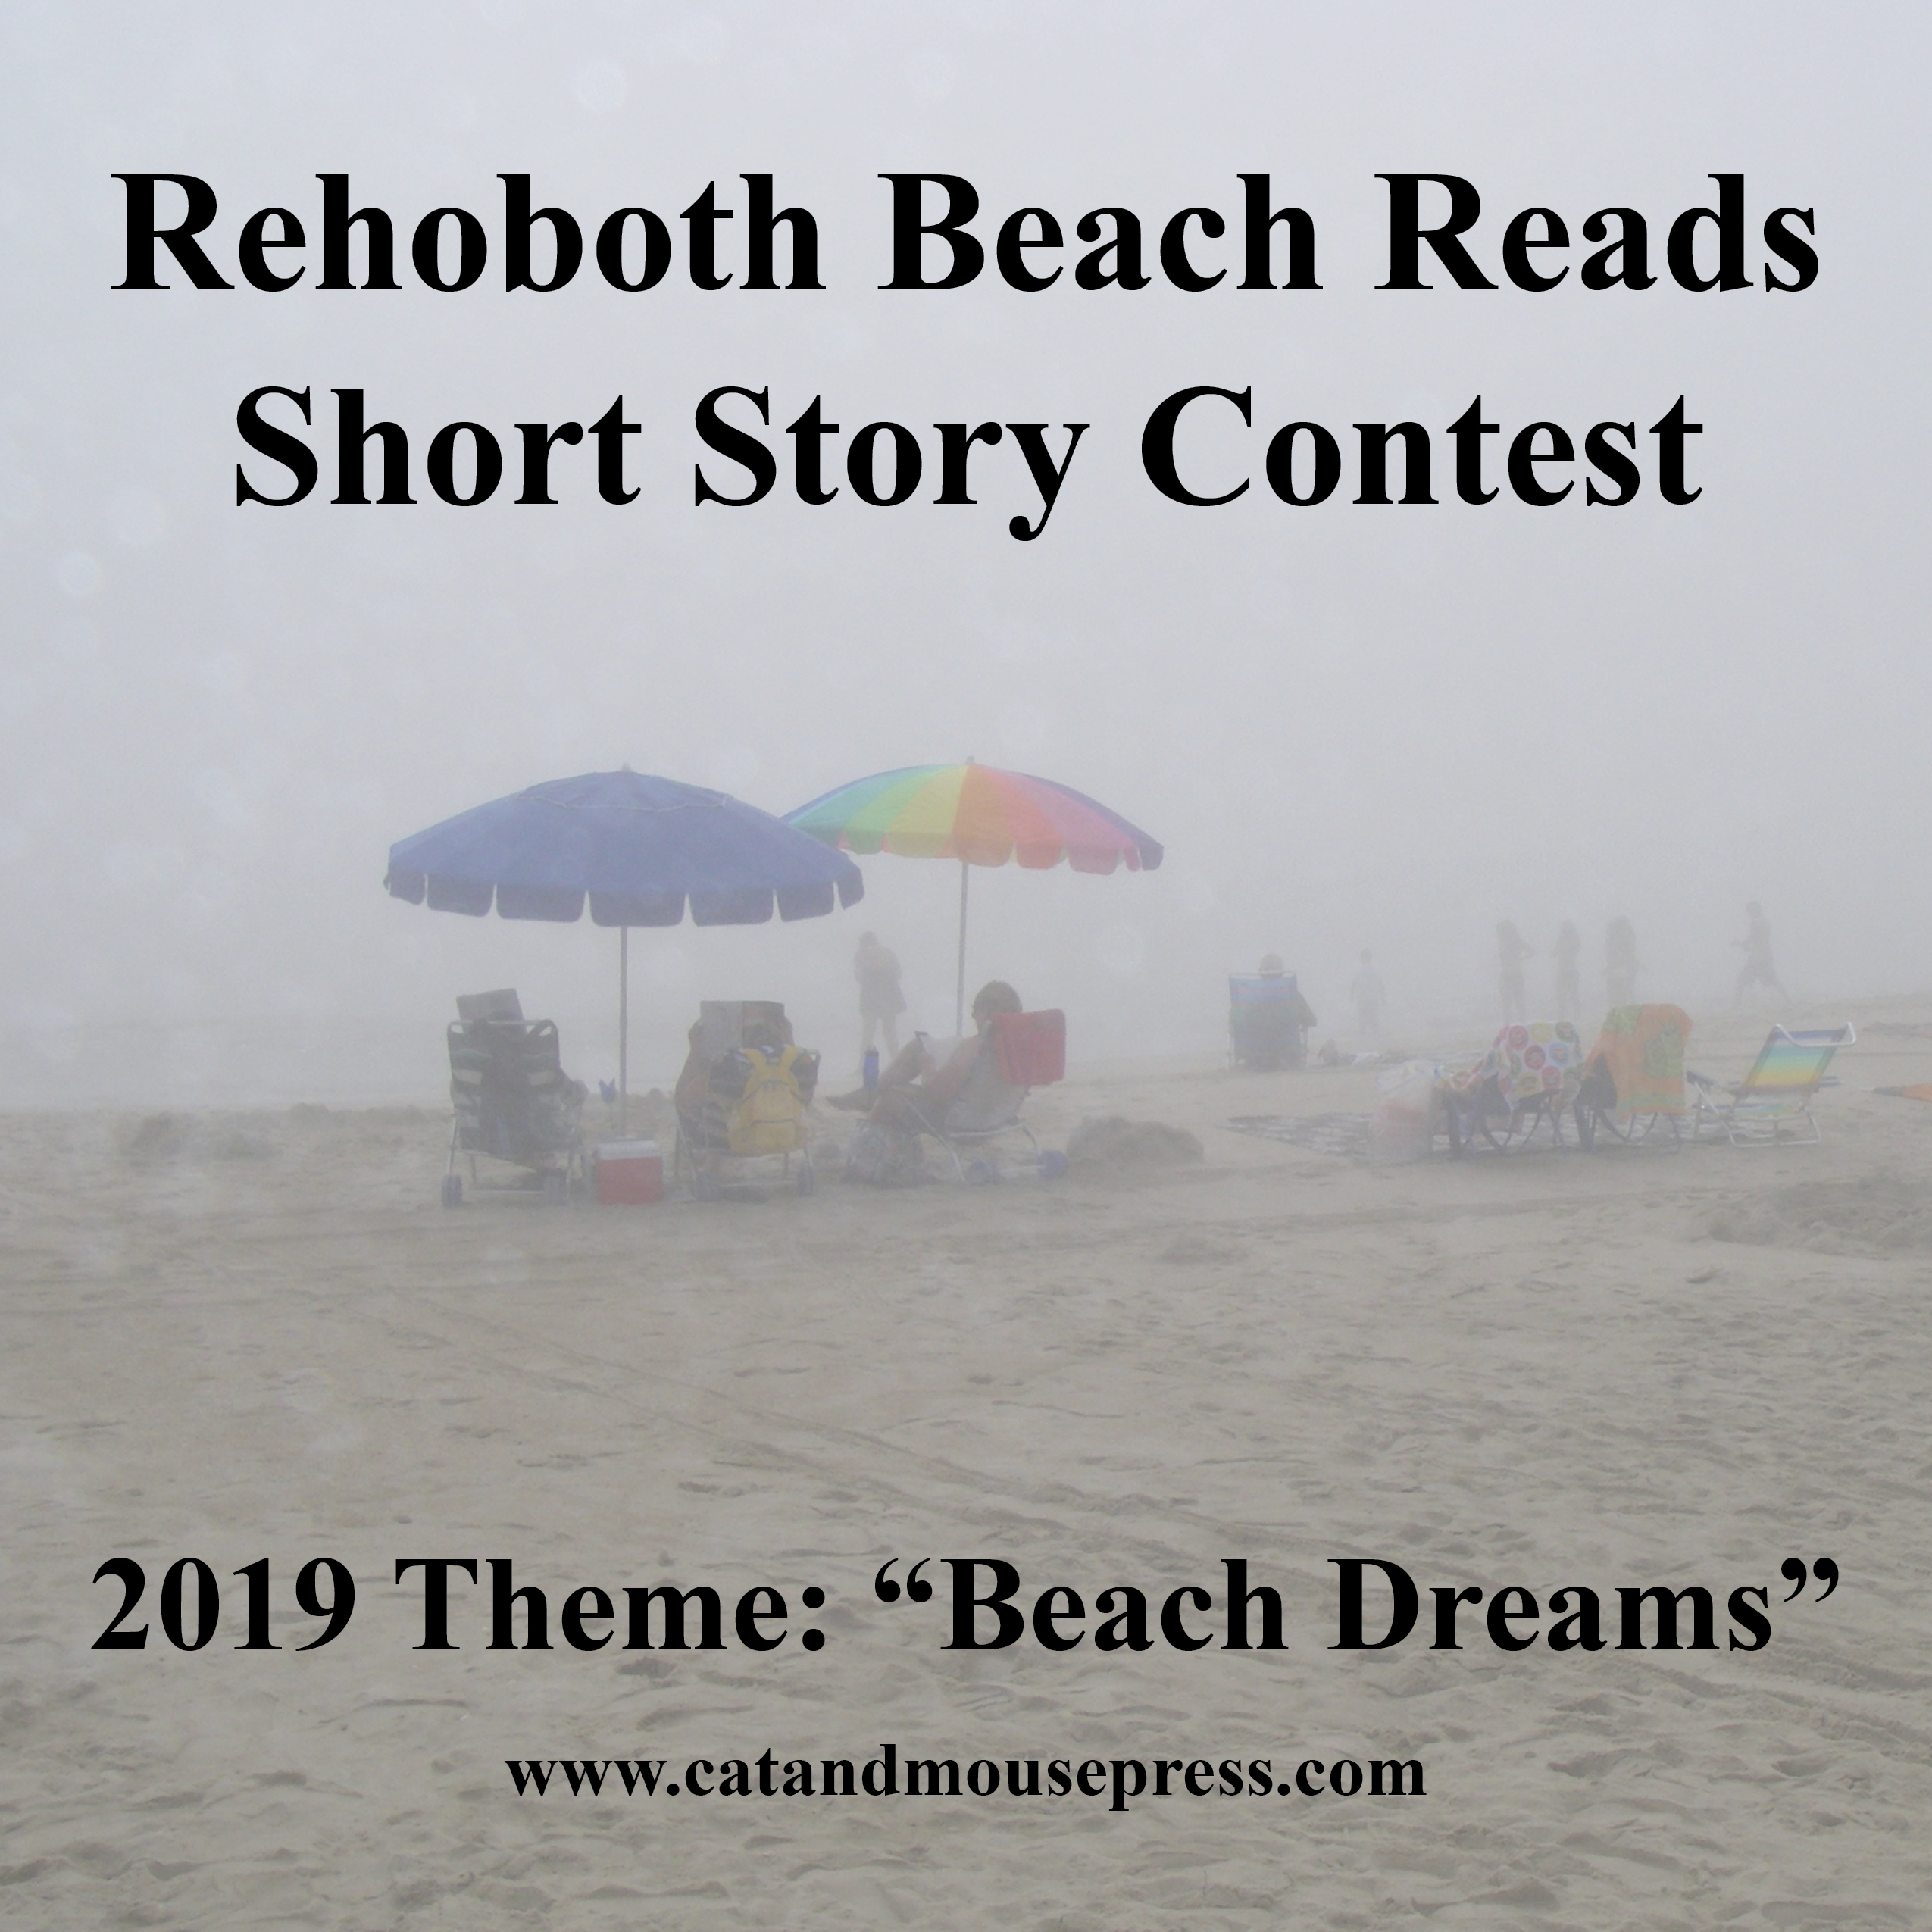 The Rehoboth Beach Reads Short Story Contest - Cat and Mouse Press